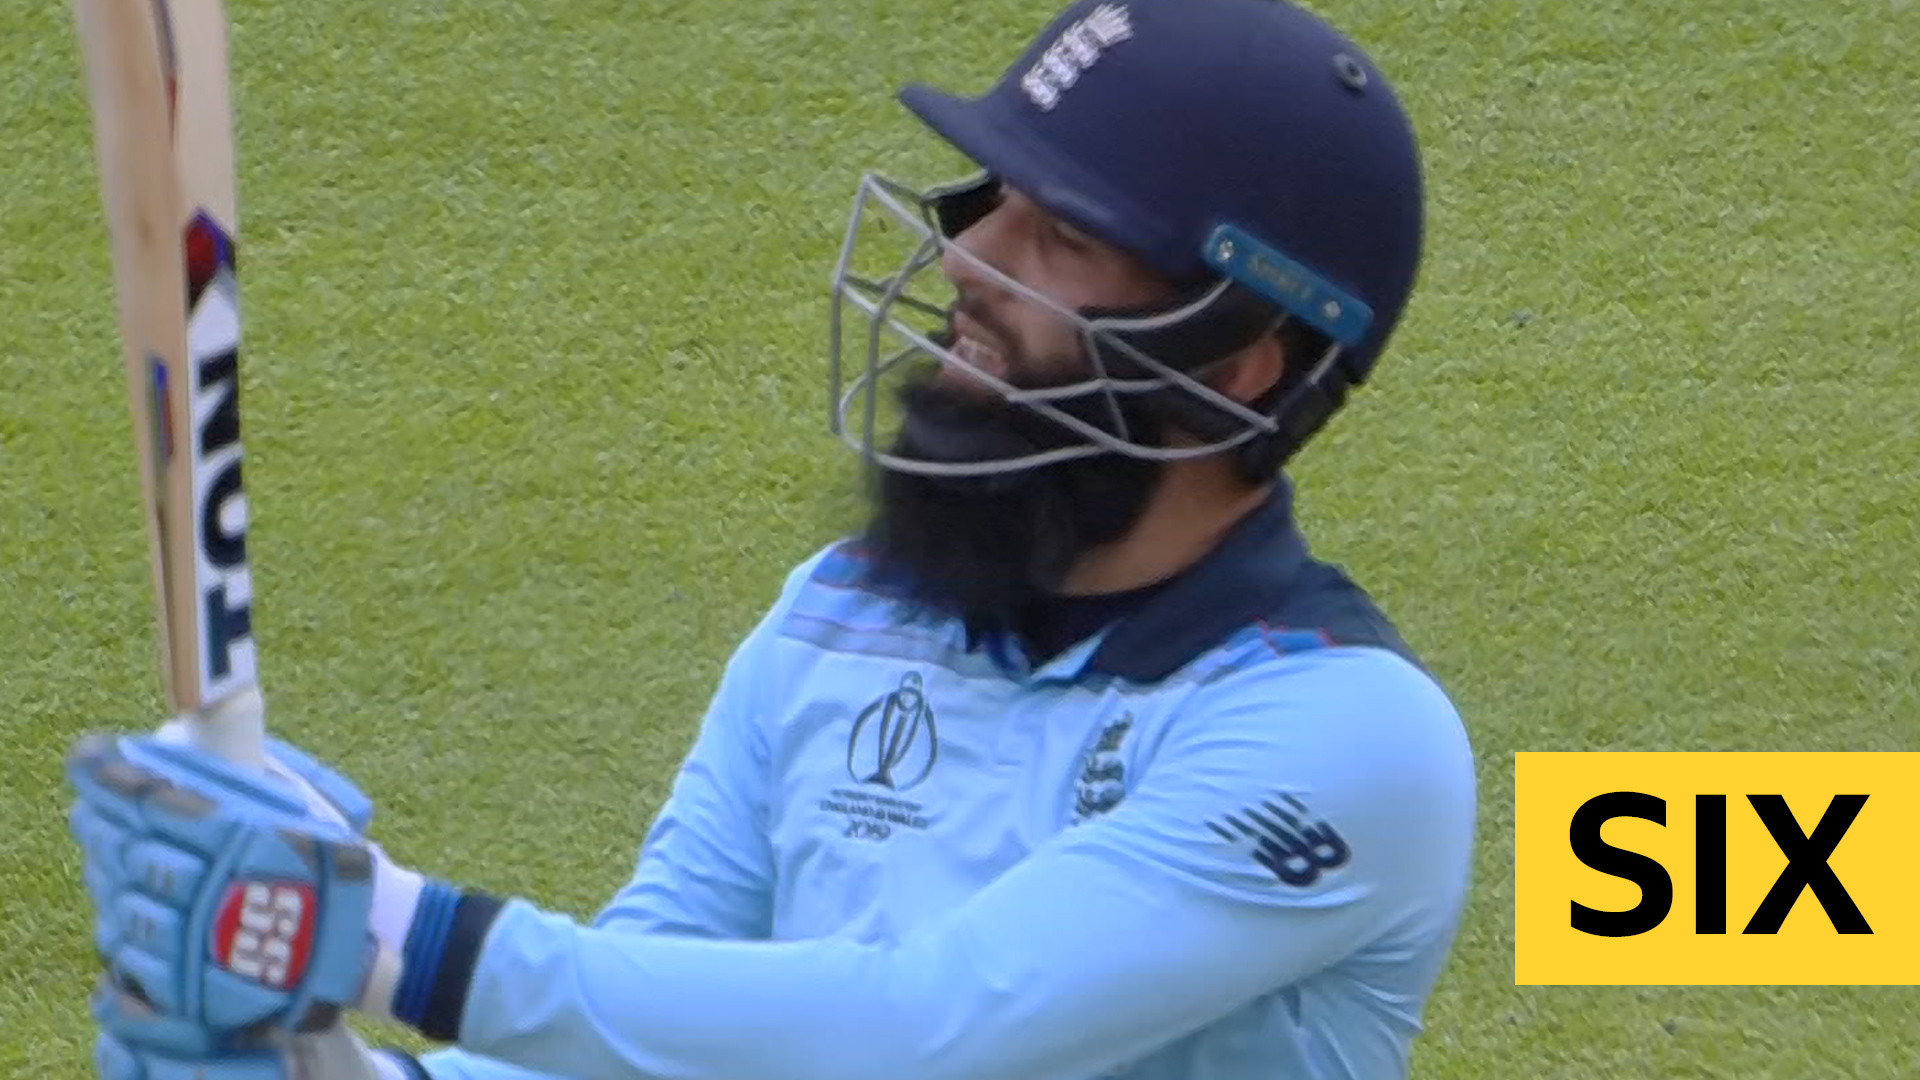 Two quickfire sixes from Moeen give England the record for most sixes is an ODI innings